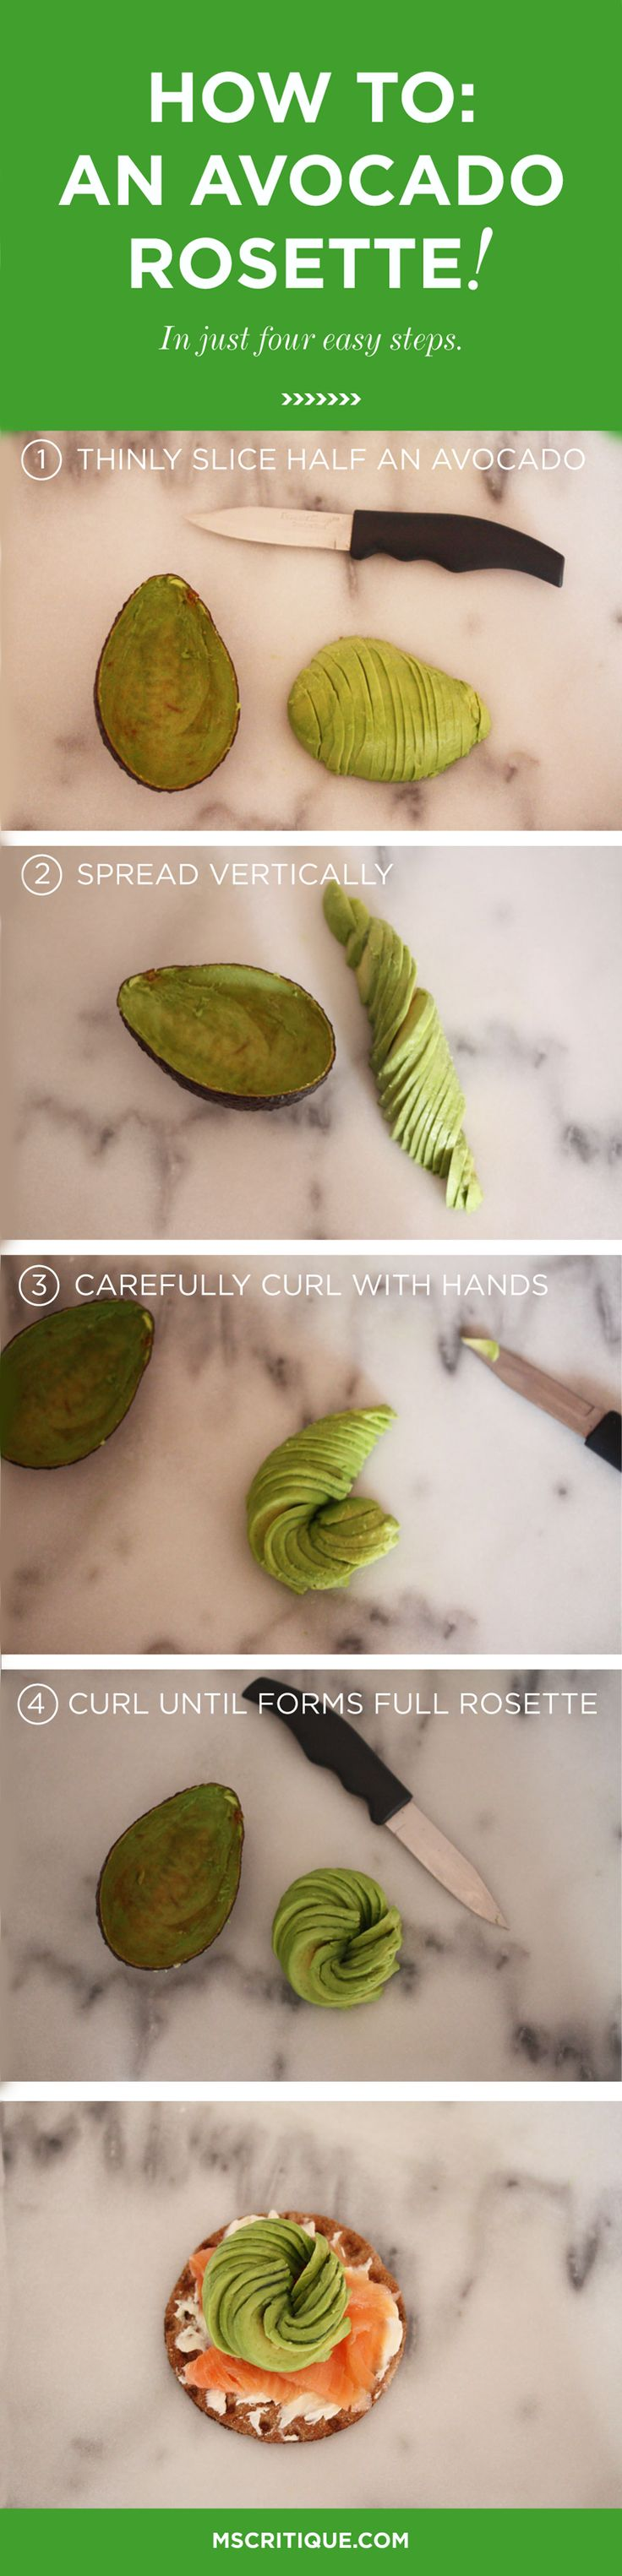 Will never go back to regular avocado again! Make an avocado rosette in 4 steps!: Regular Avocado, Avocado Country, Yummy Garnishing, Chee Plates, Travel Food, Food Garnishing, Beautiful Food And Travel, Cheese Plates, Avocado Rosette